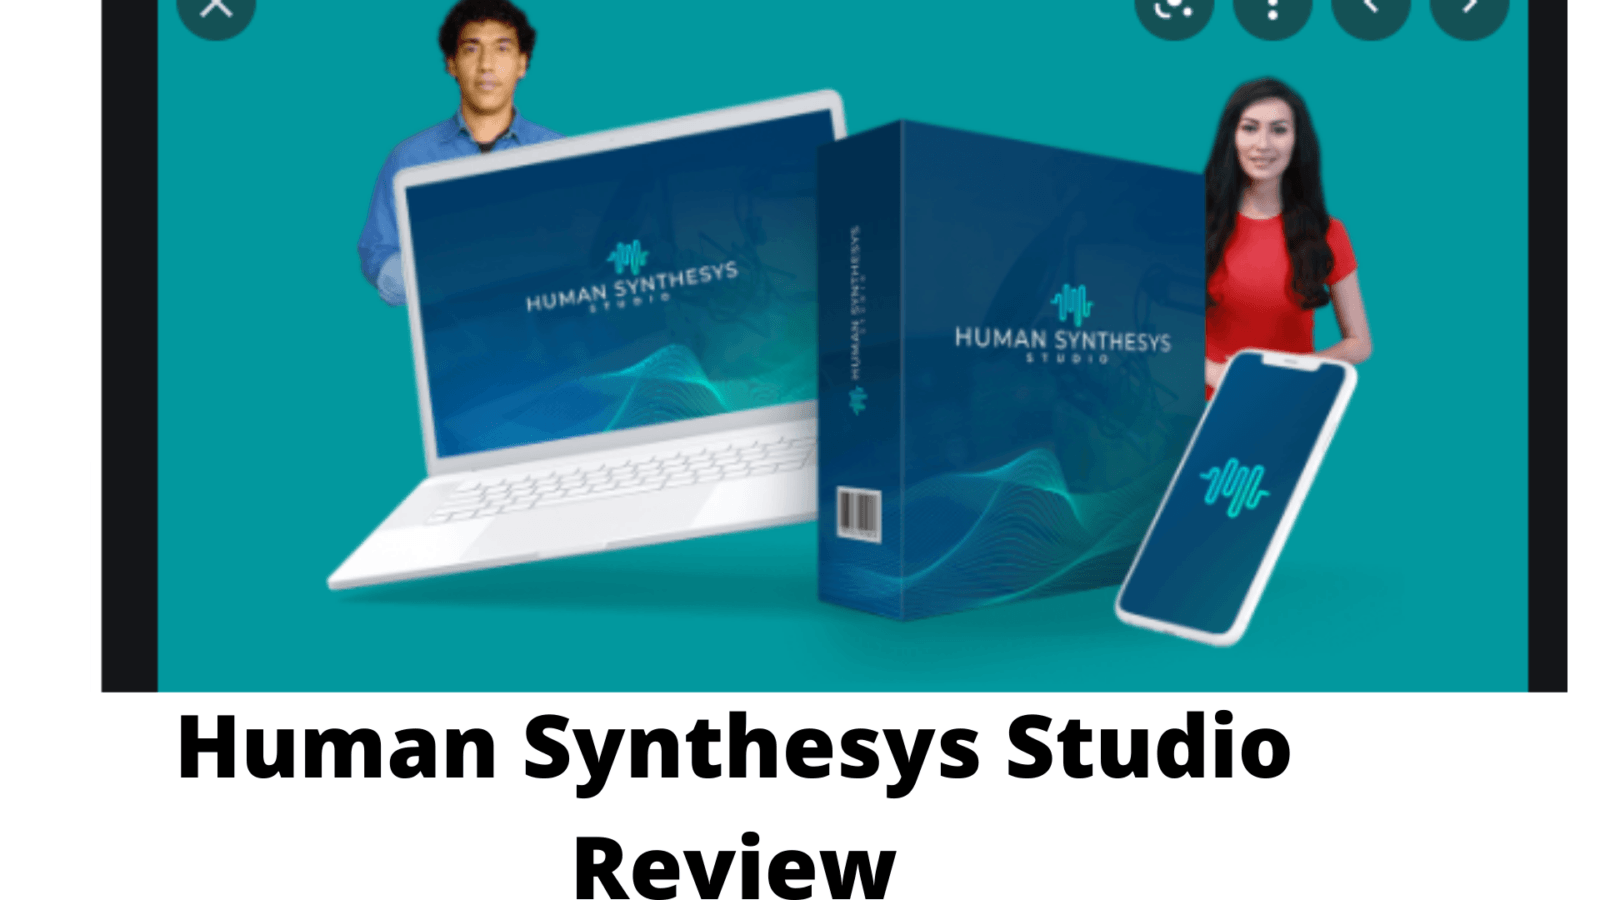 Human Synthesys Studio Review